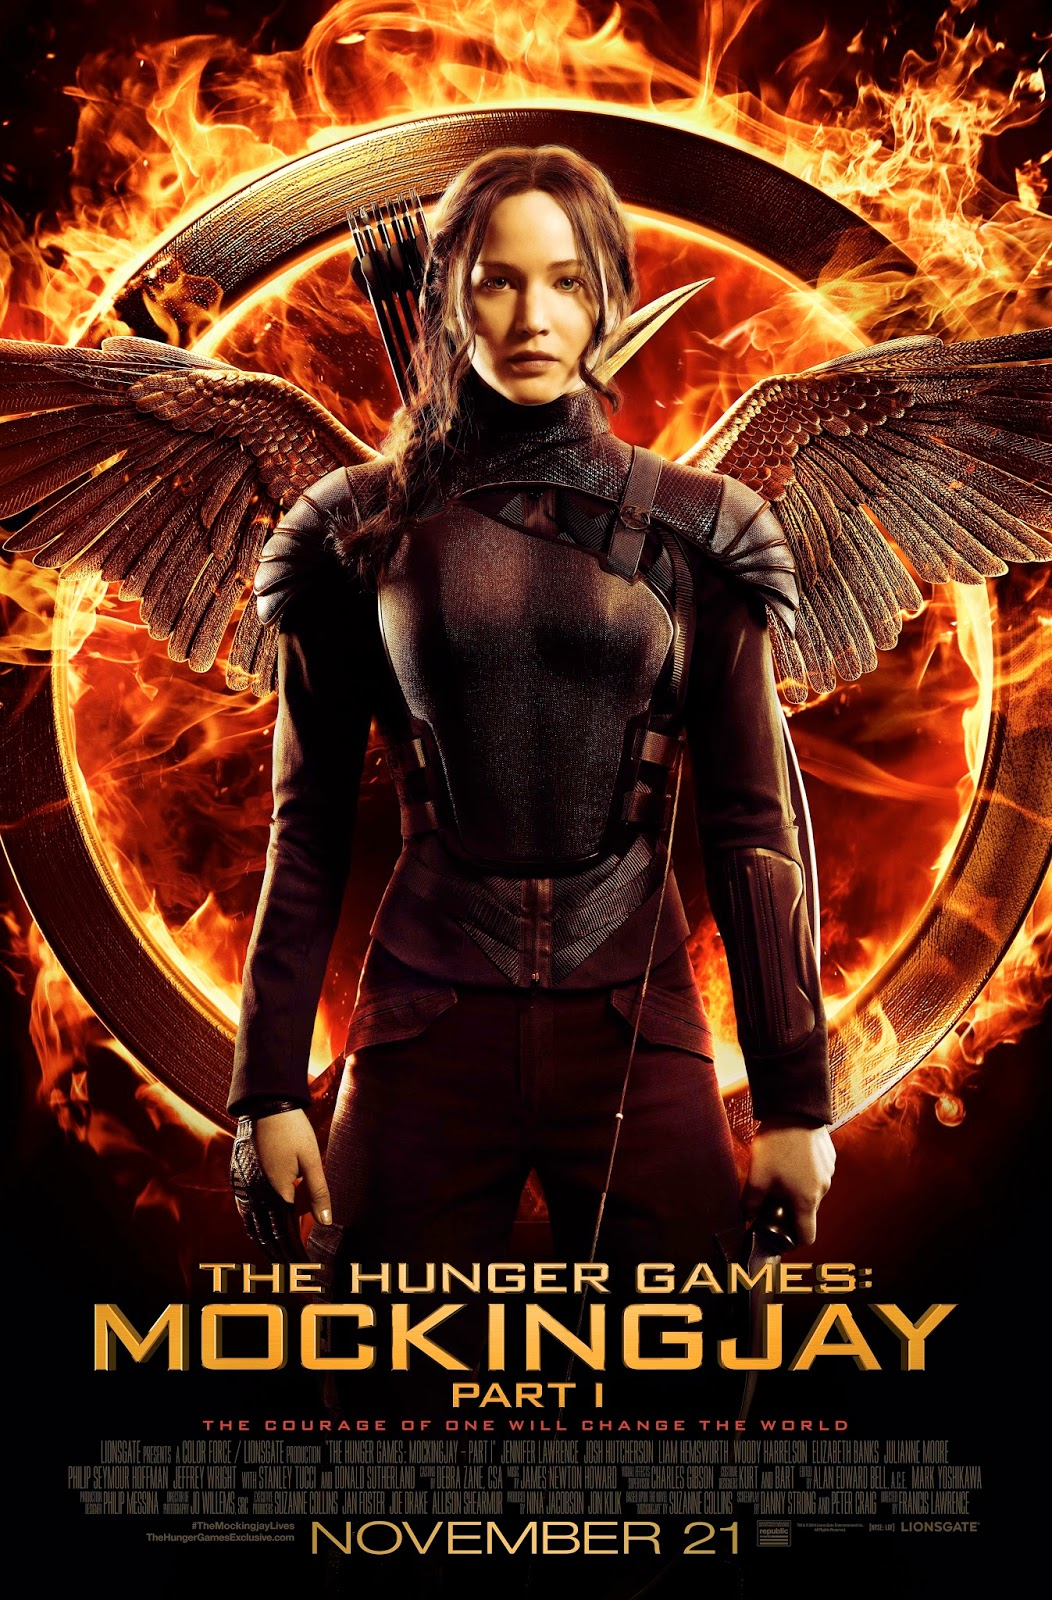 Hunger Games - Mocking Jay Part 1 Movie Poster